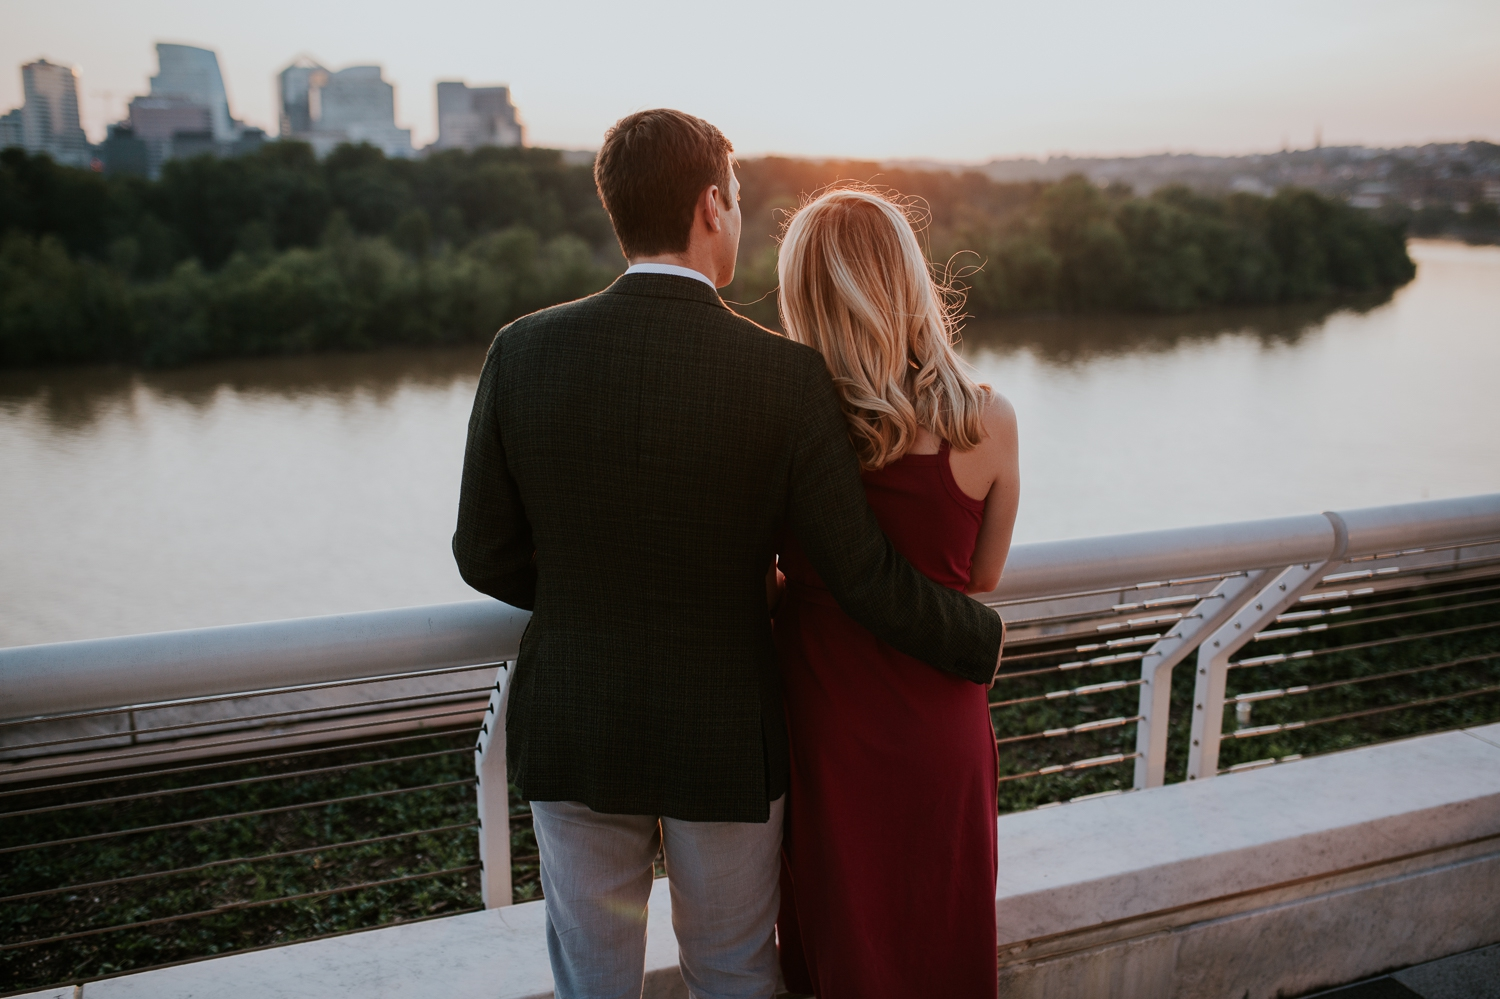 washington-dc-kennedy-center-rooftop-sunset-engagement-photography 19.jpg